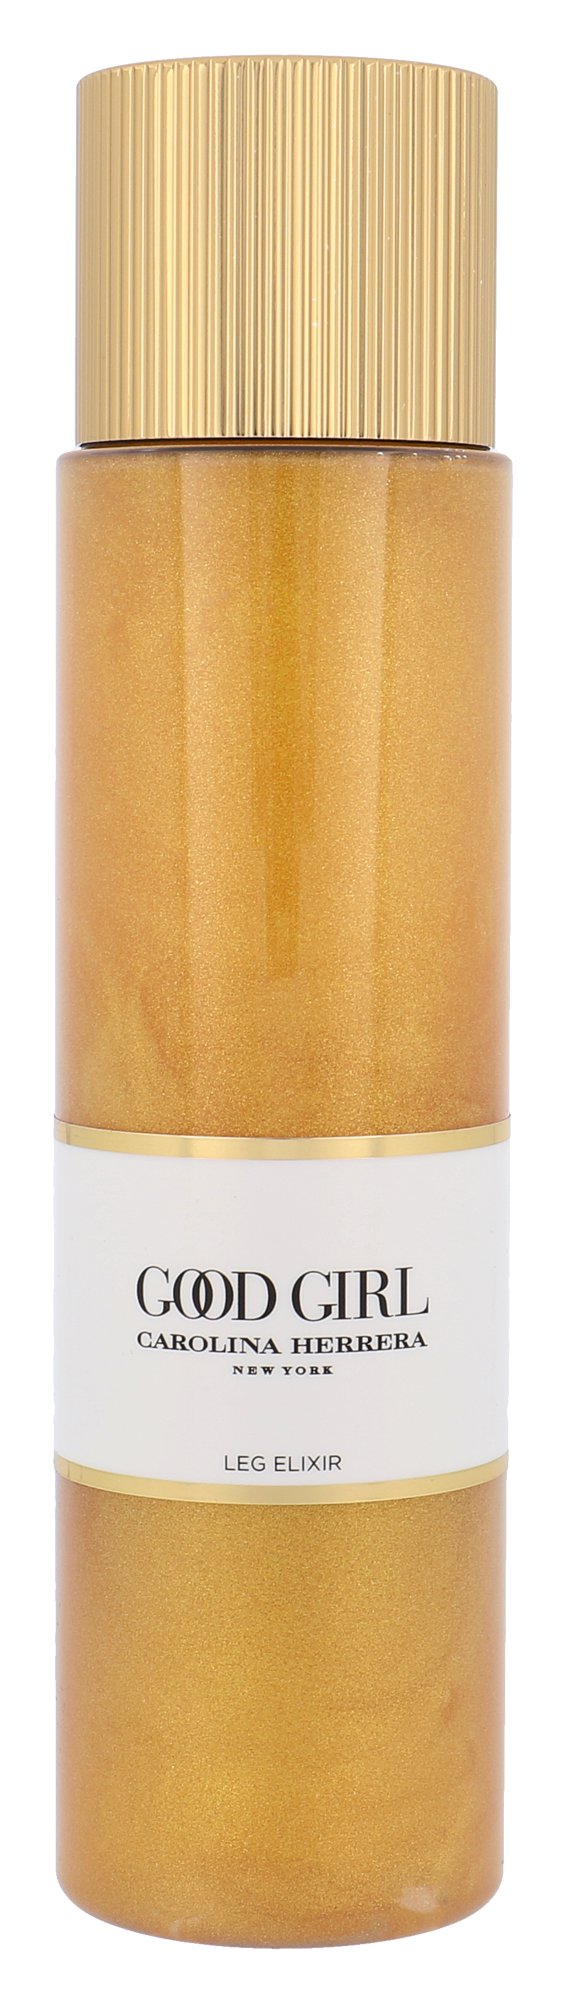 Carolina Herrera Good Girl, Parfumovaný olej na nohy 200ml